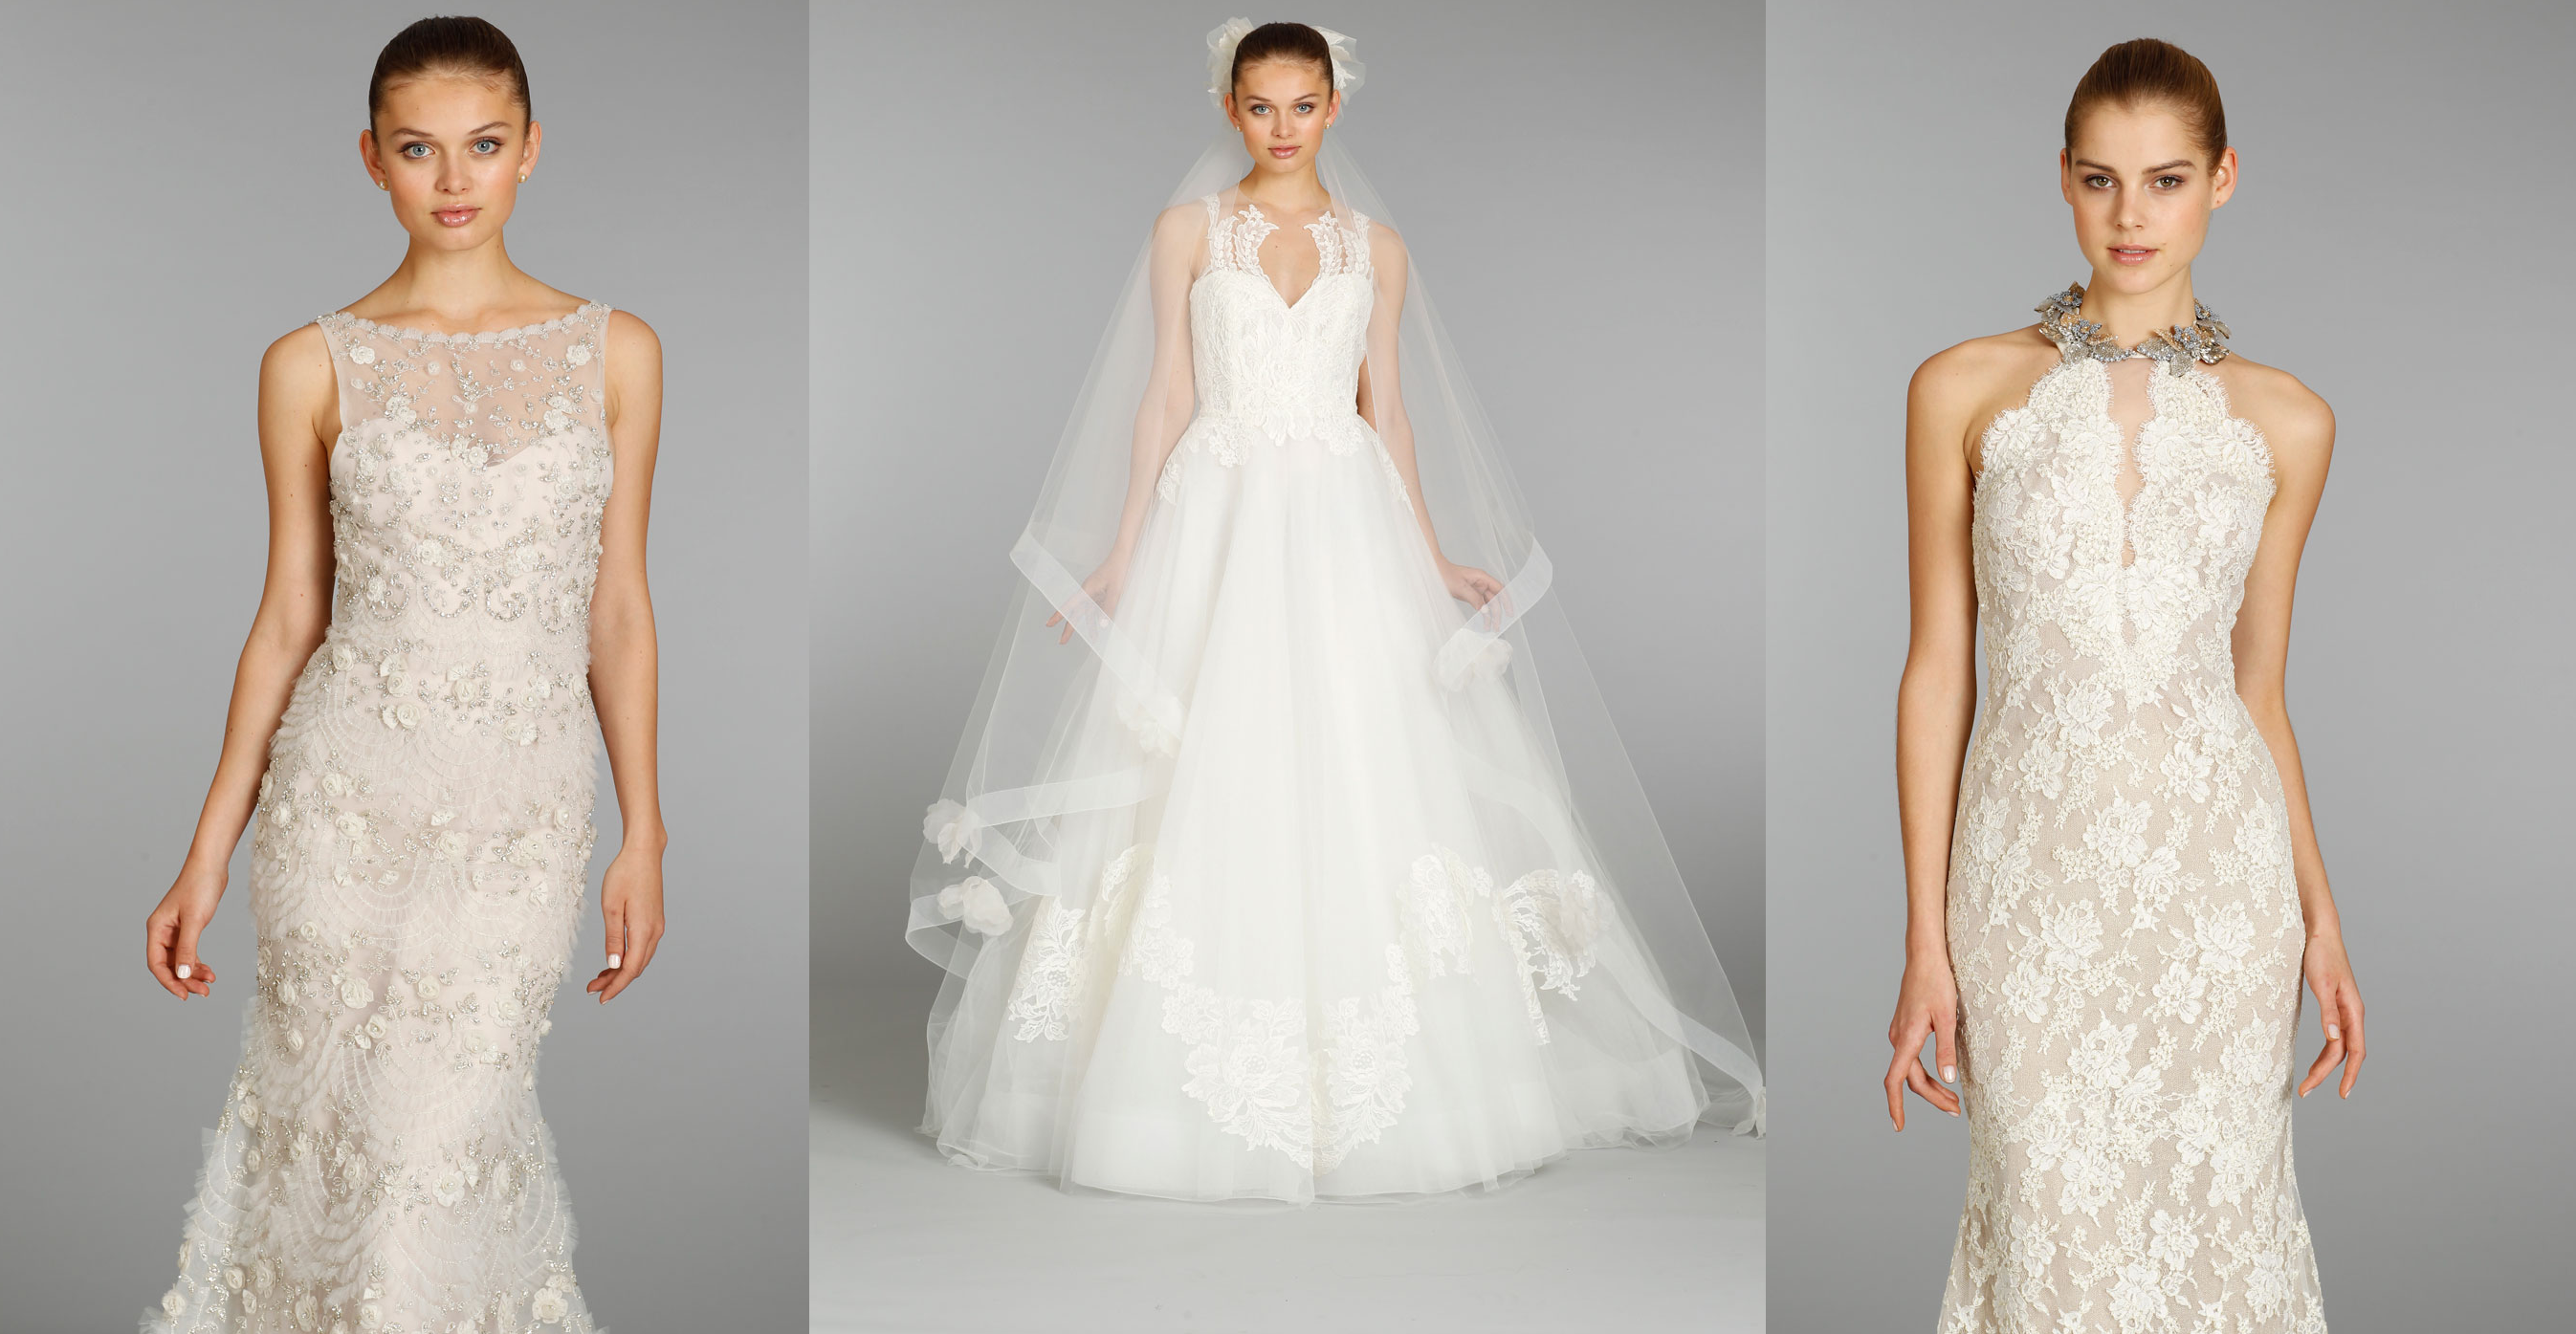 Lazaro wedding dresses fall 2013 bridal for Where to buy lazaro wedding dresses